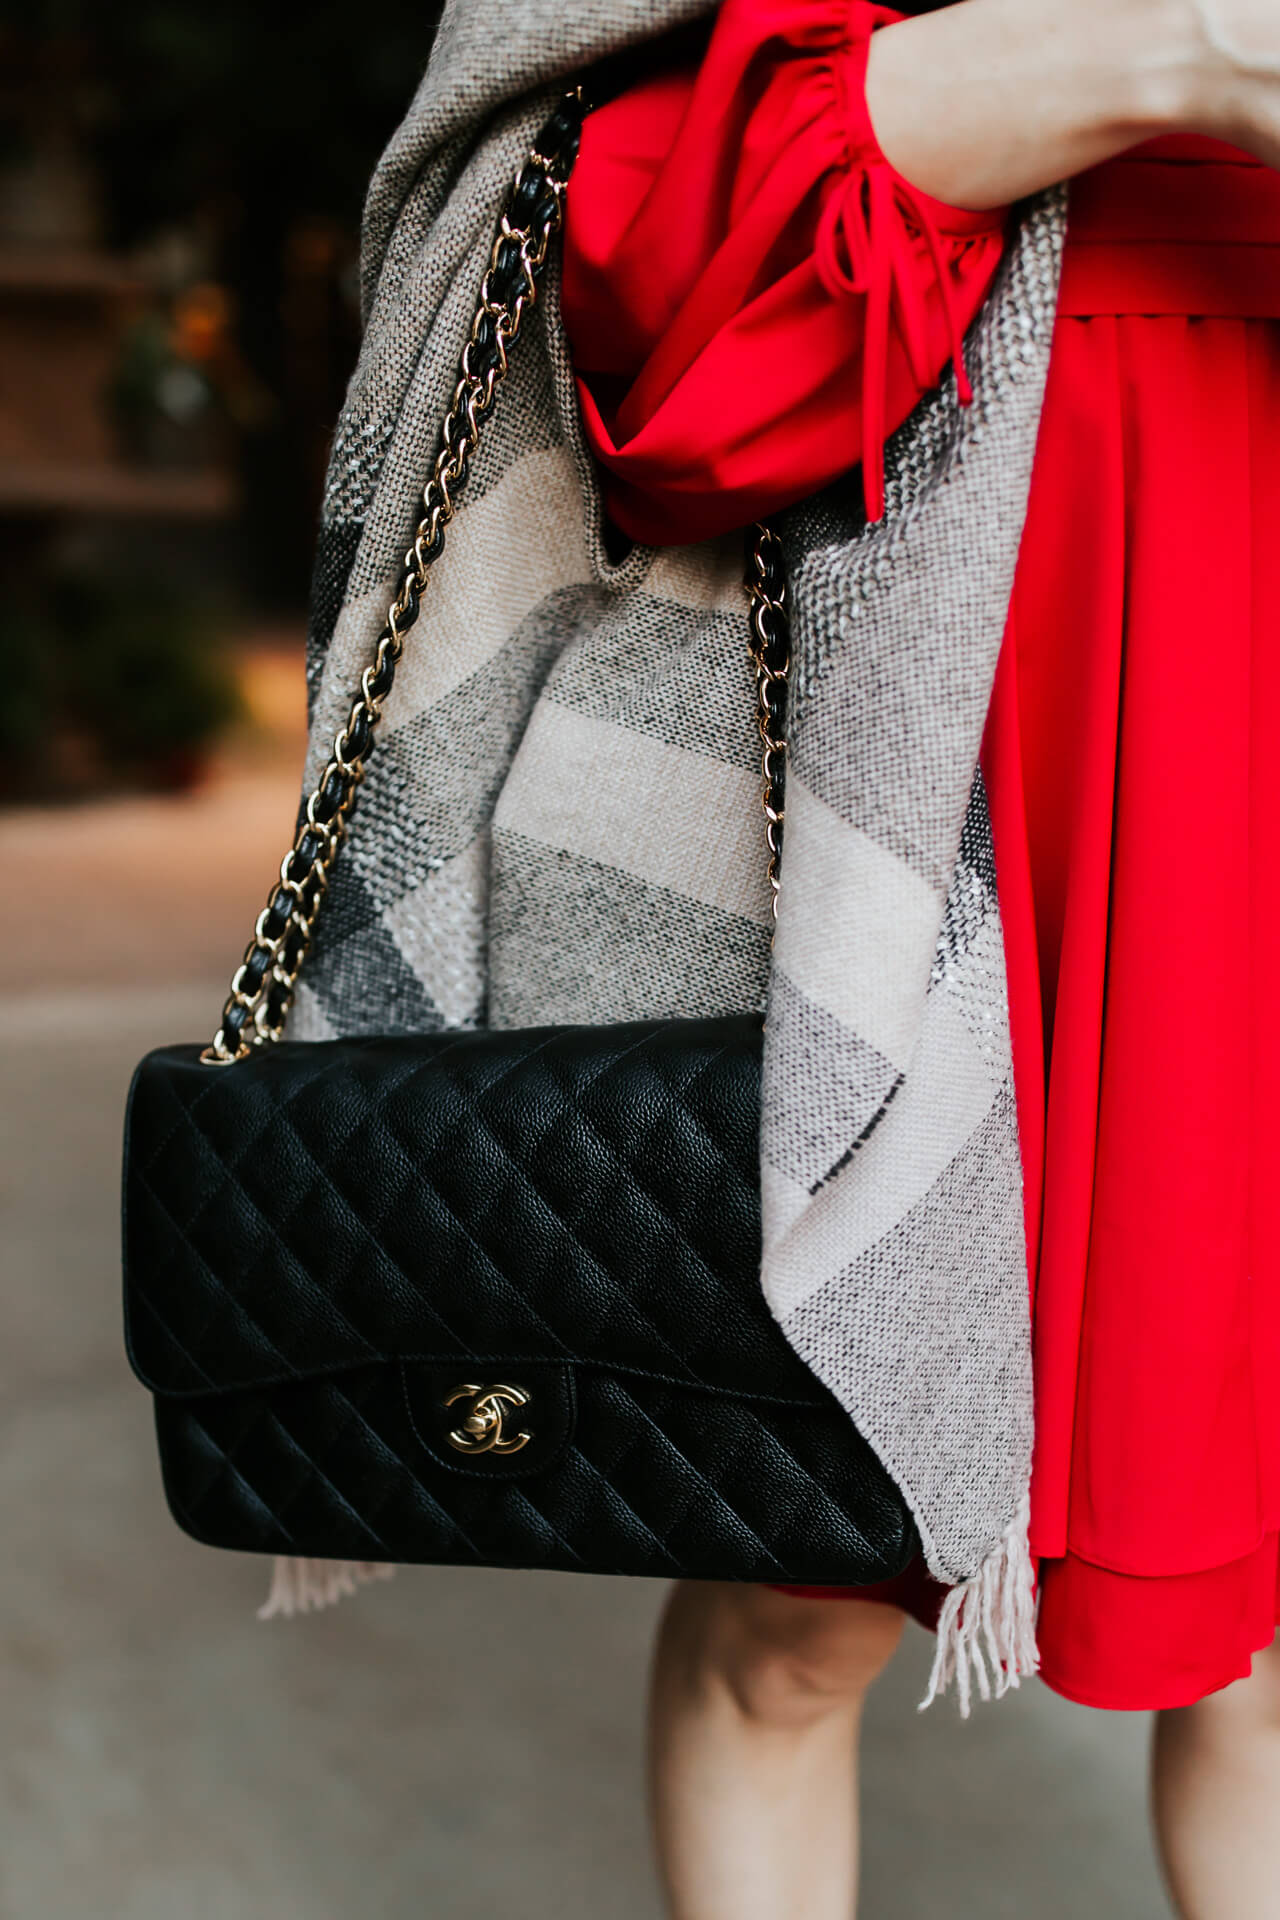 i rarely wear black bags but love the contrast with this red dress